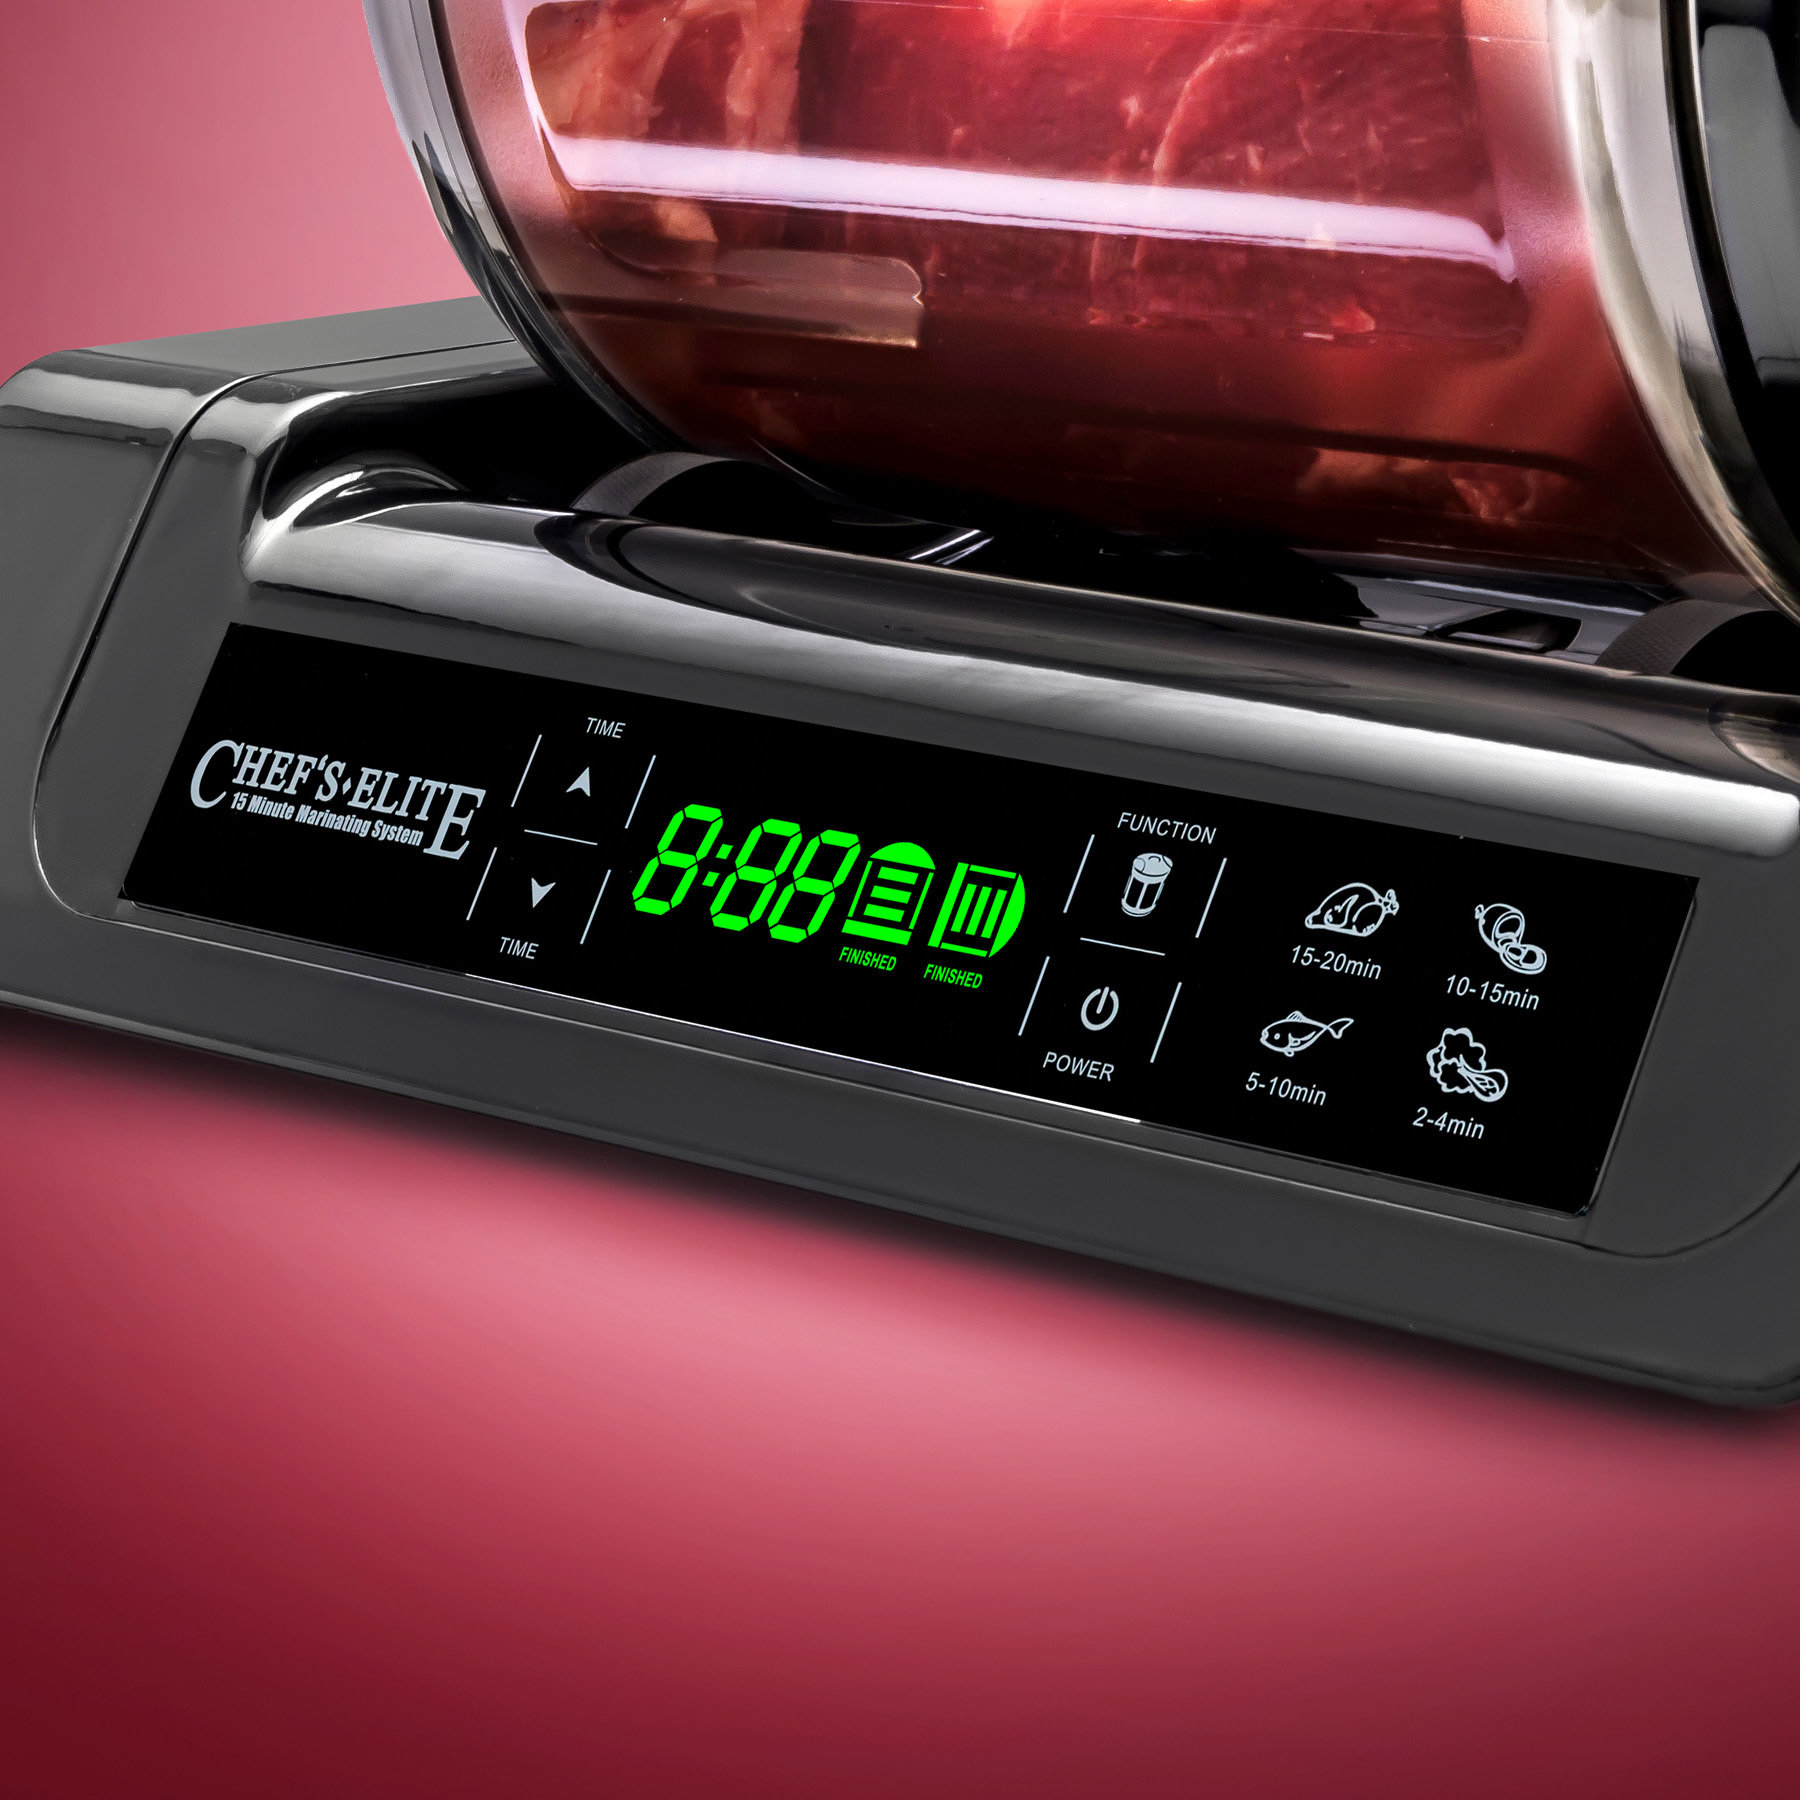 STX Chef's Elite 15 Minute Vacuum-Sealing & Marinating System